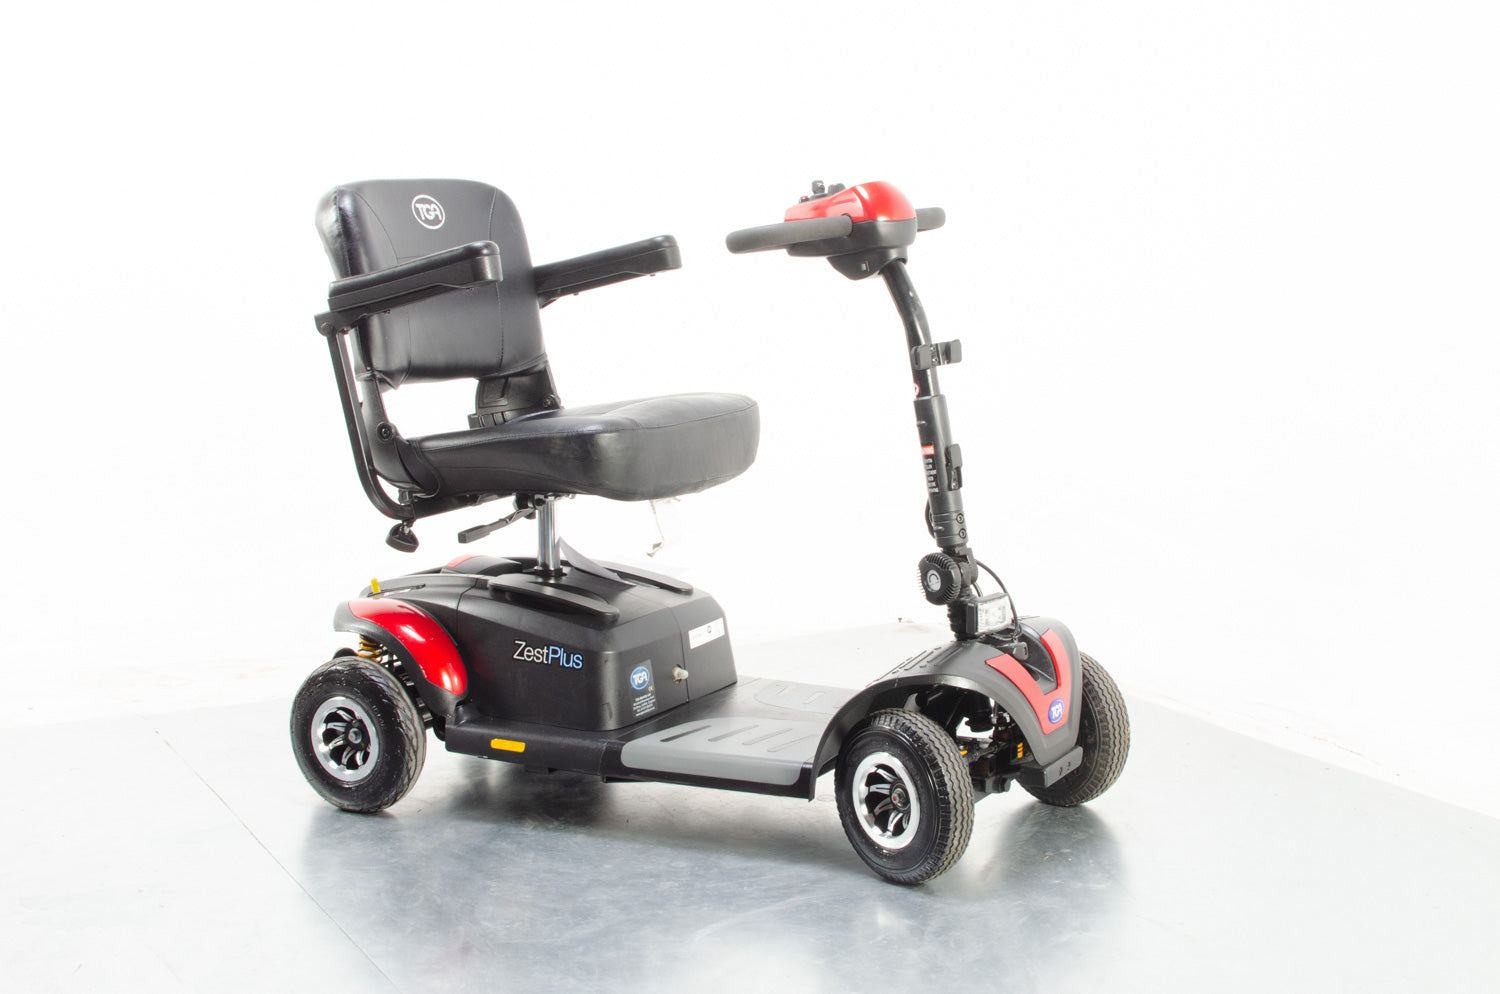 2018 TGA Zest Plus 4mph Electric Mobility Scooter Used Second Hand Transportable Boot Pneumatic Tyres Red